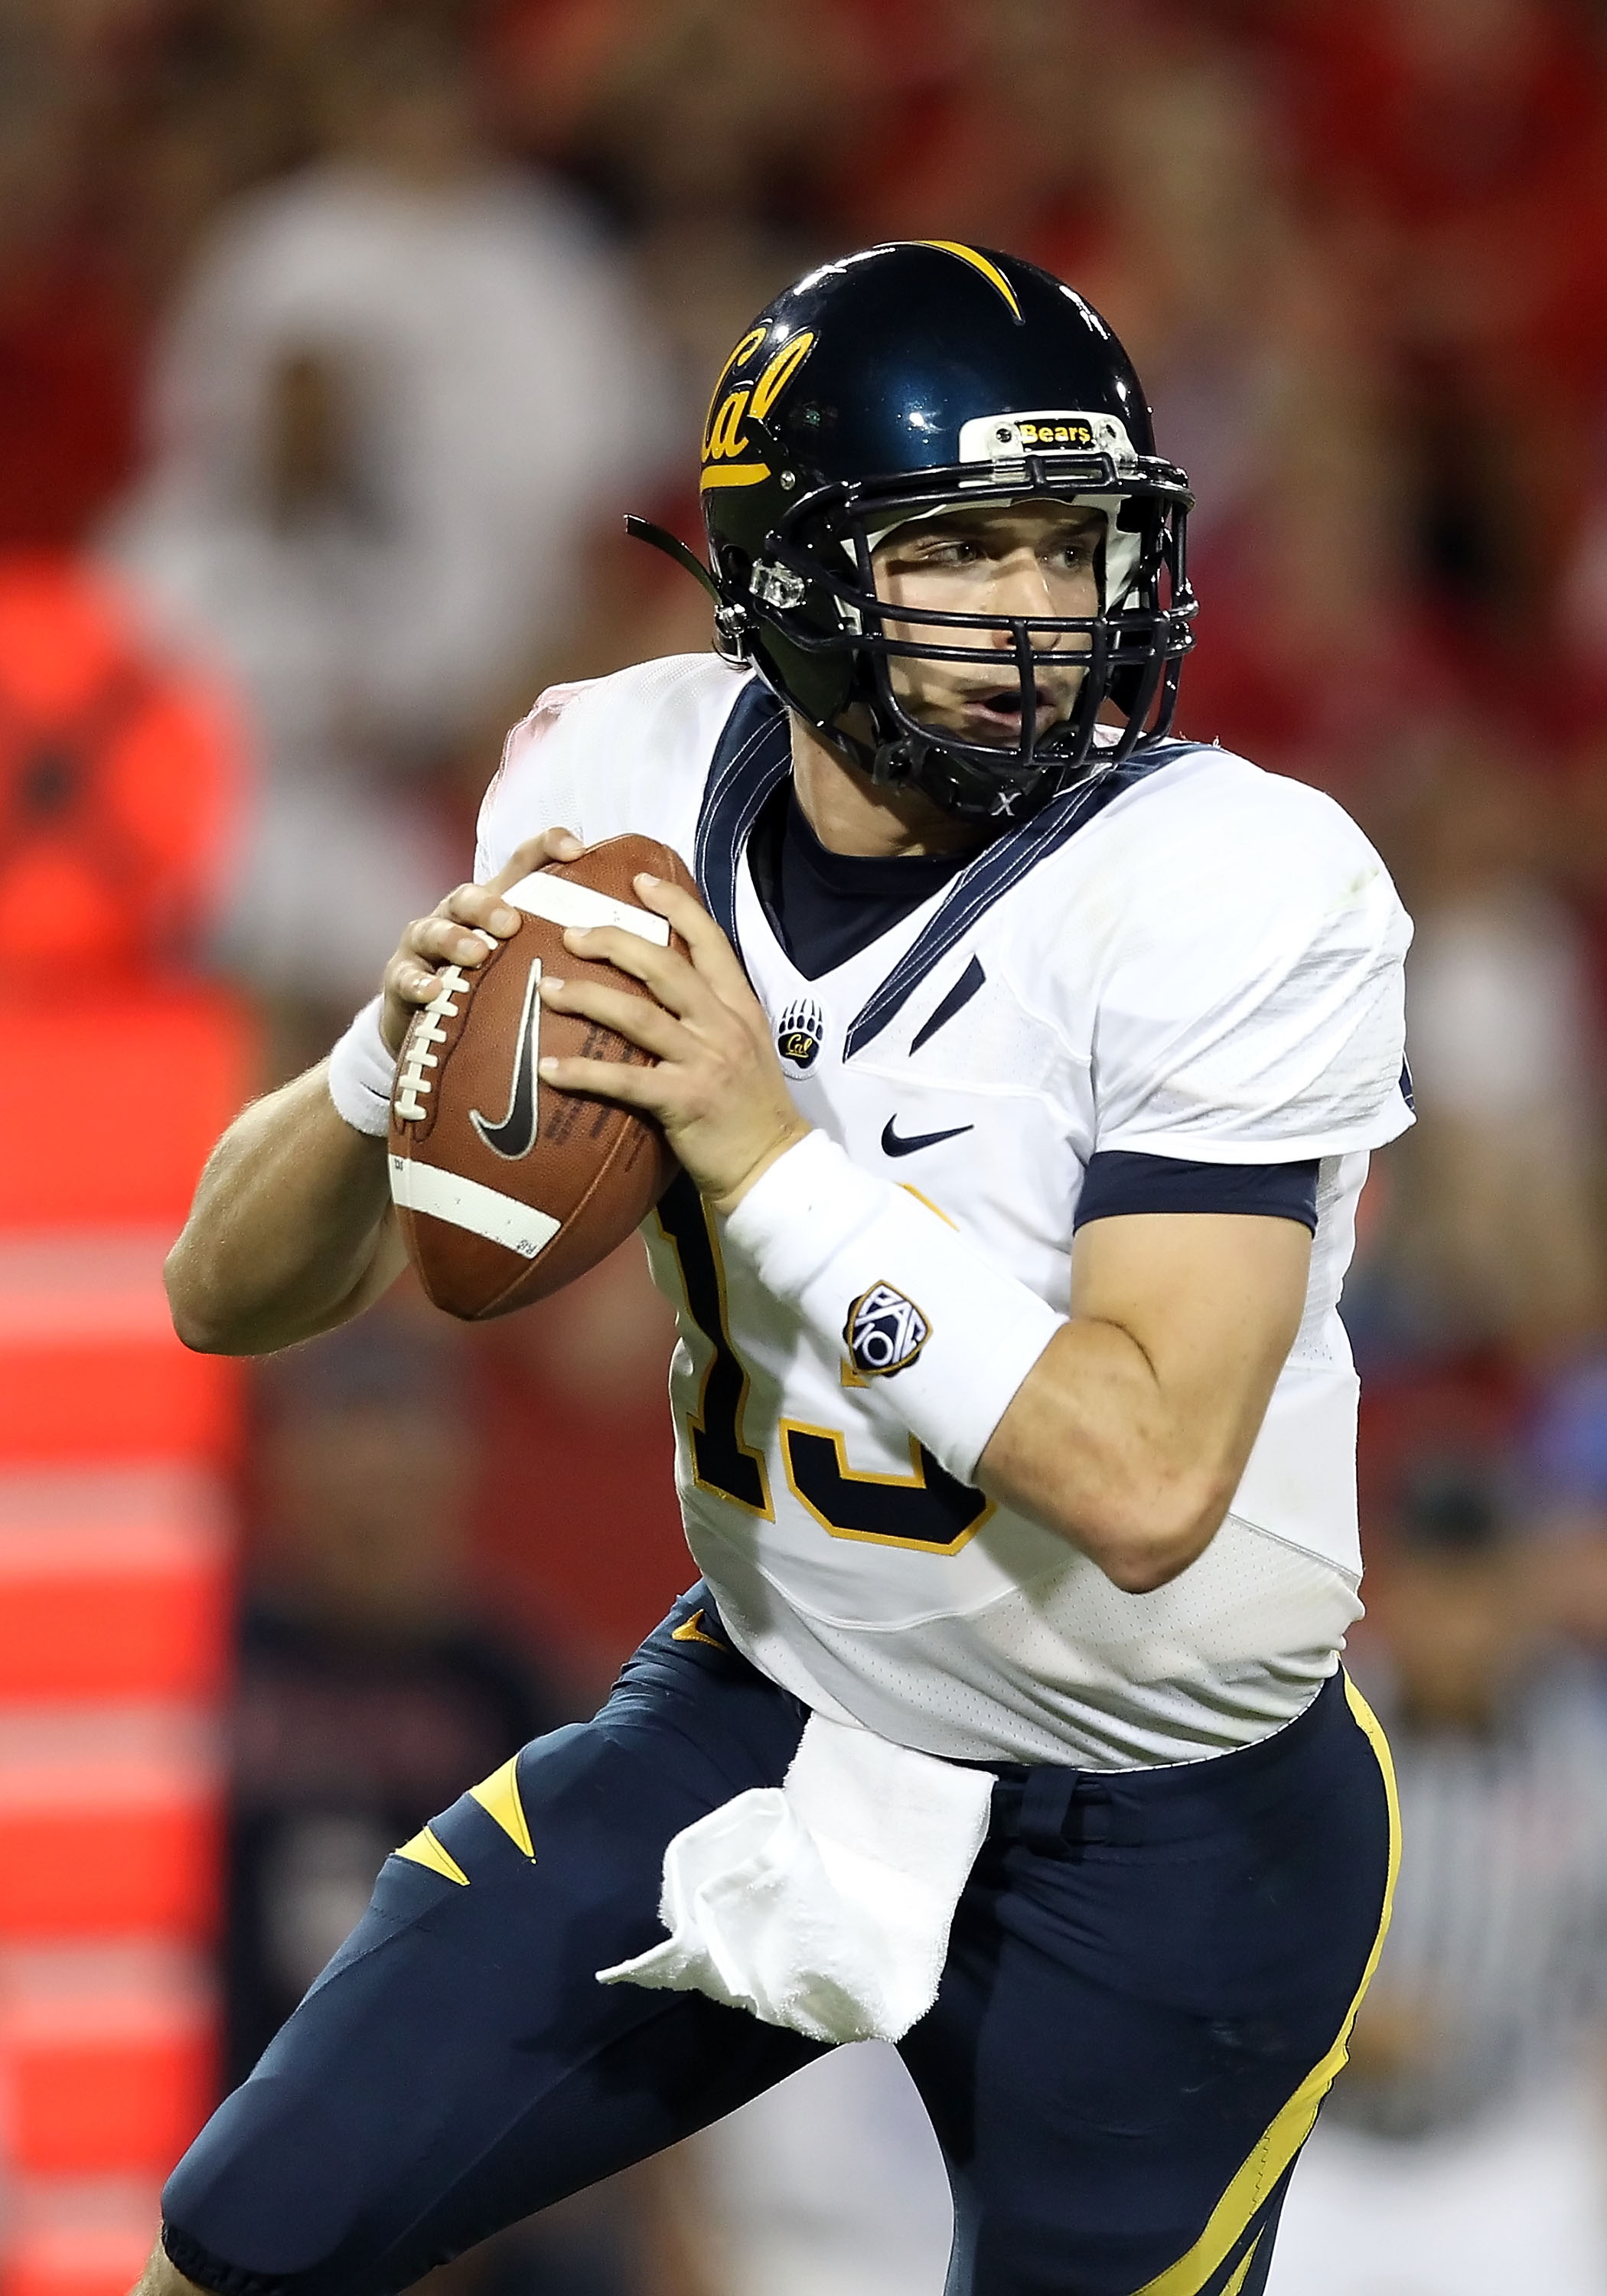 TUCSON, AZ - SEPTEMBER 25:  Quarterback Kevin Riley #13 of the California Golden Bears drops back to pass during the college football game against the Arizona Wildcats at Arizona Stadium on September 25, 2010 in Tucson, Arizona. The Wildcats defeated the